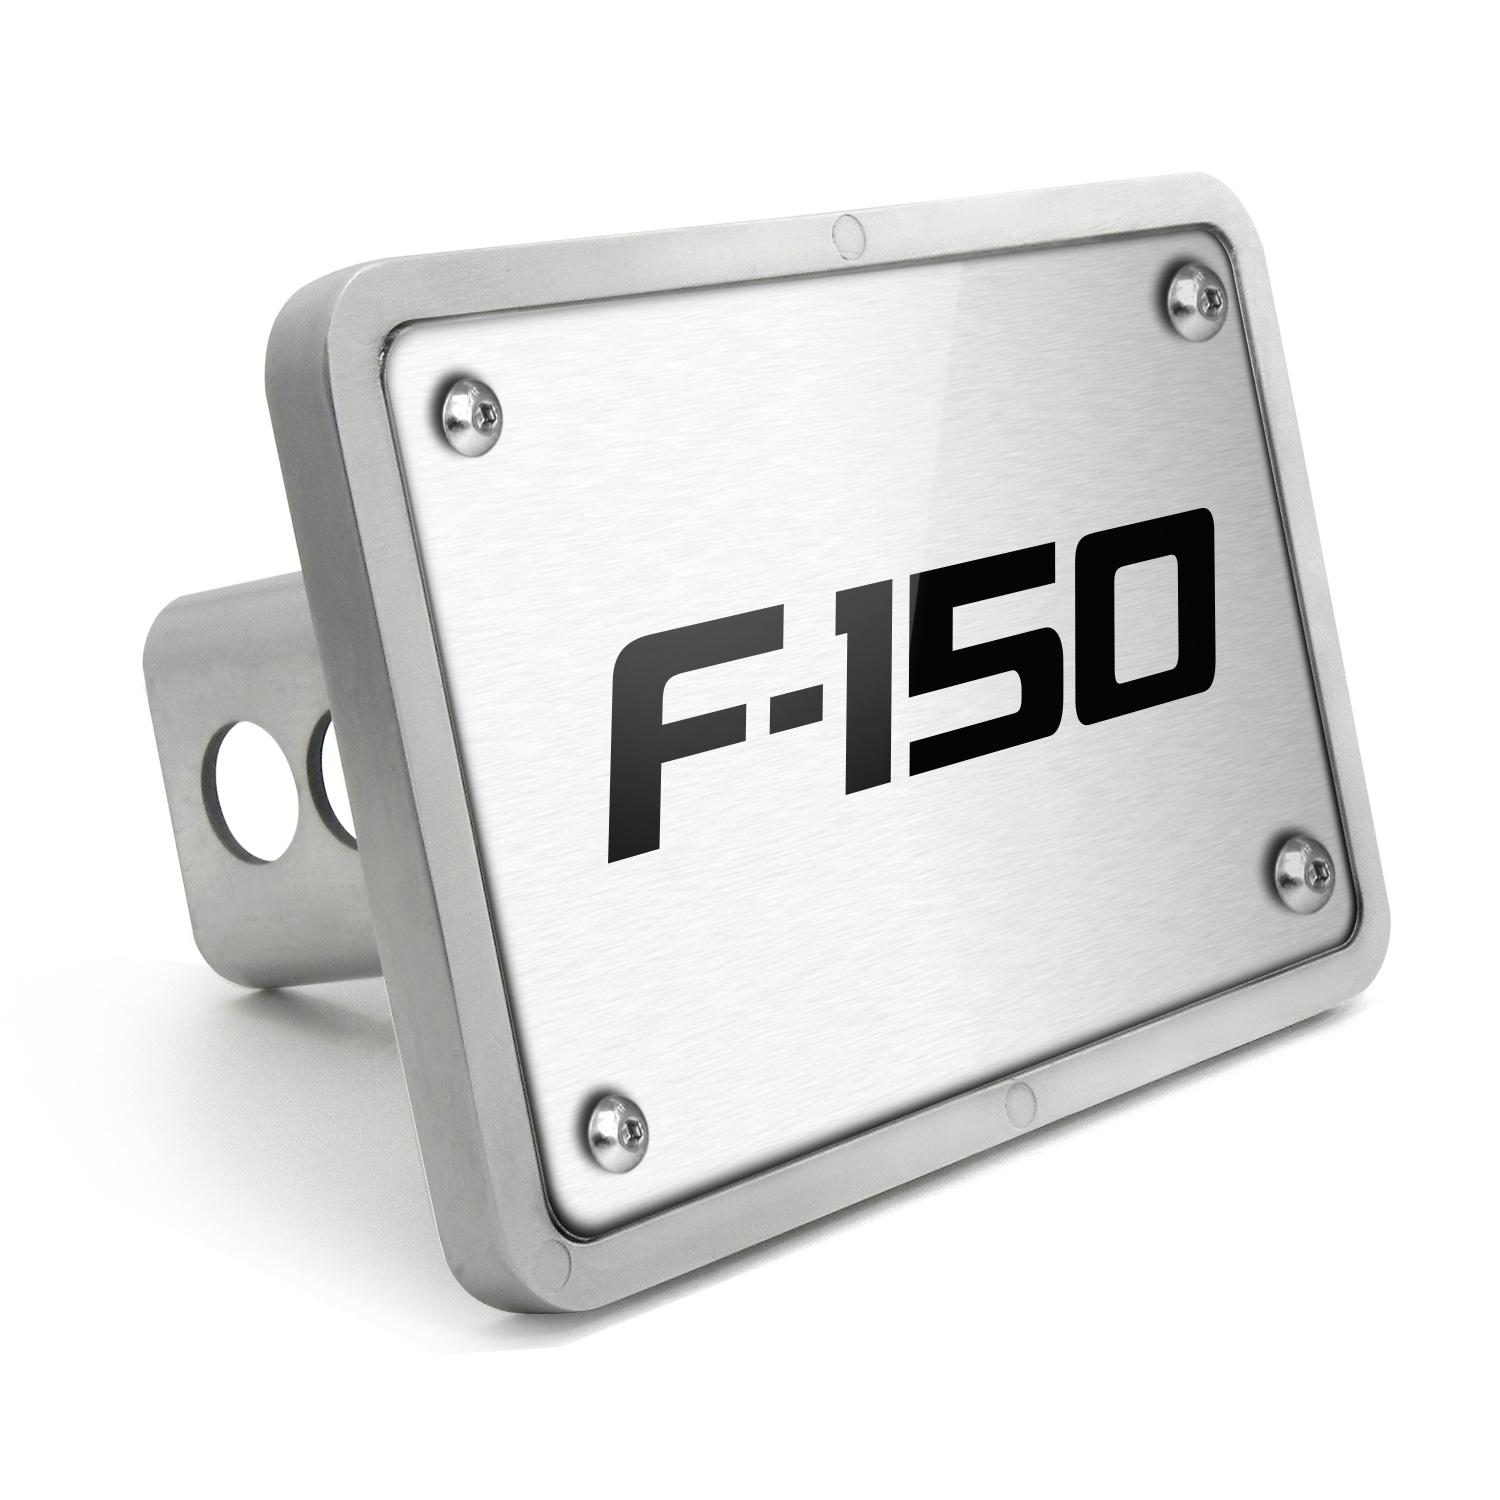 Ford F-150 2009-2014 UV Graphic Brushed Silver Billet Aluminum 2 inch Tow Hitch Cover